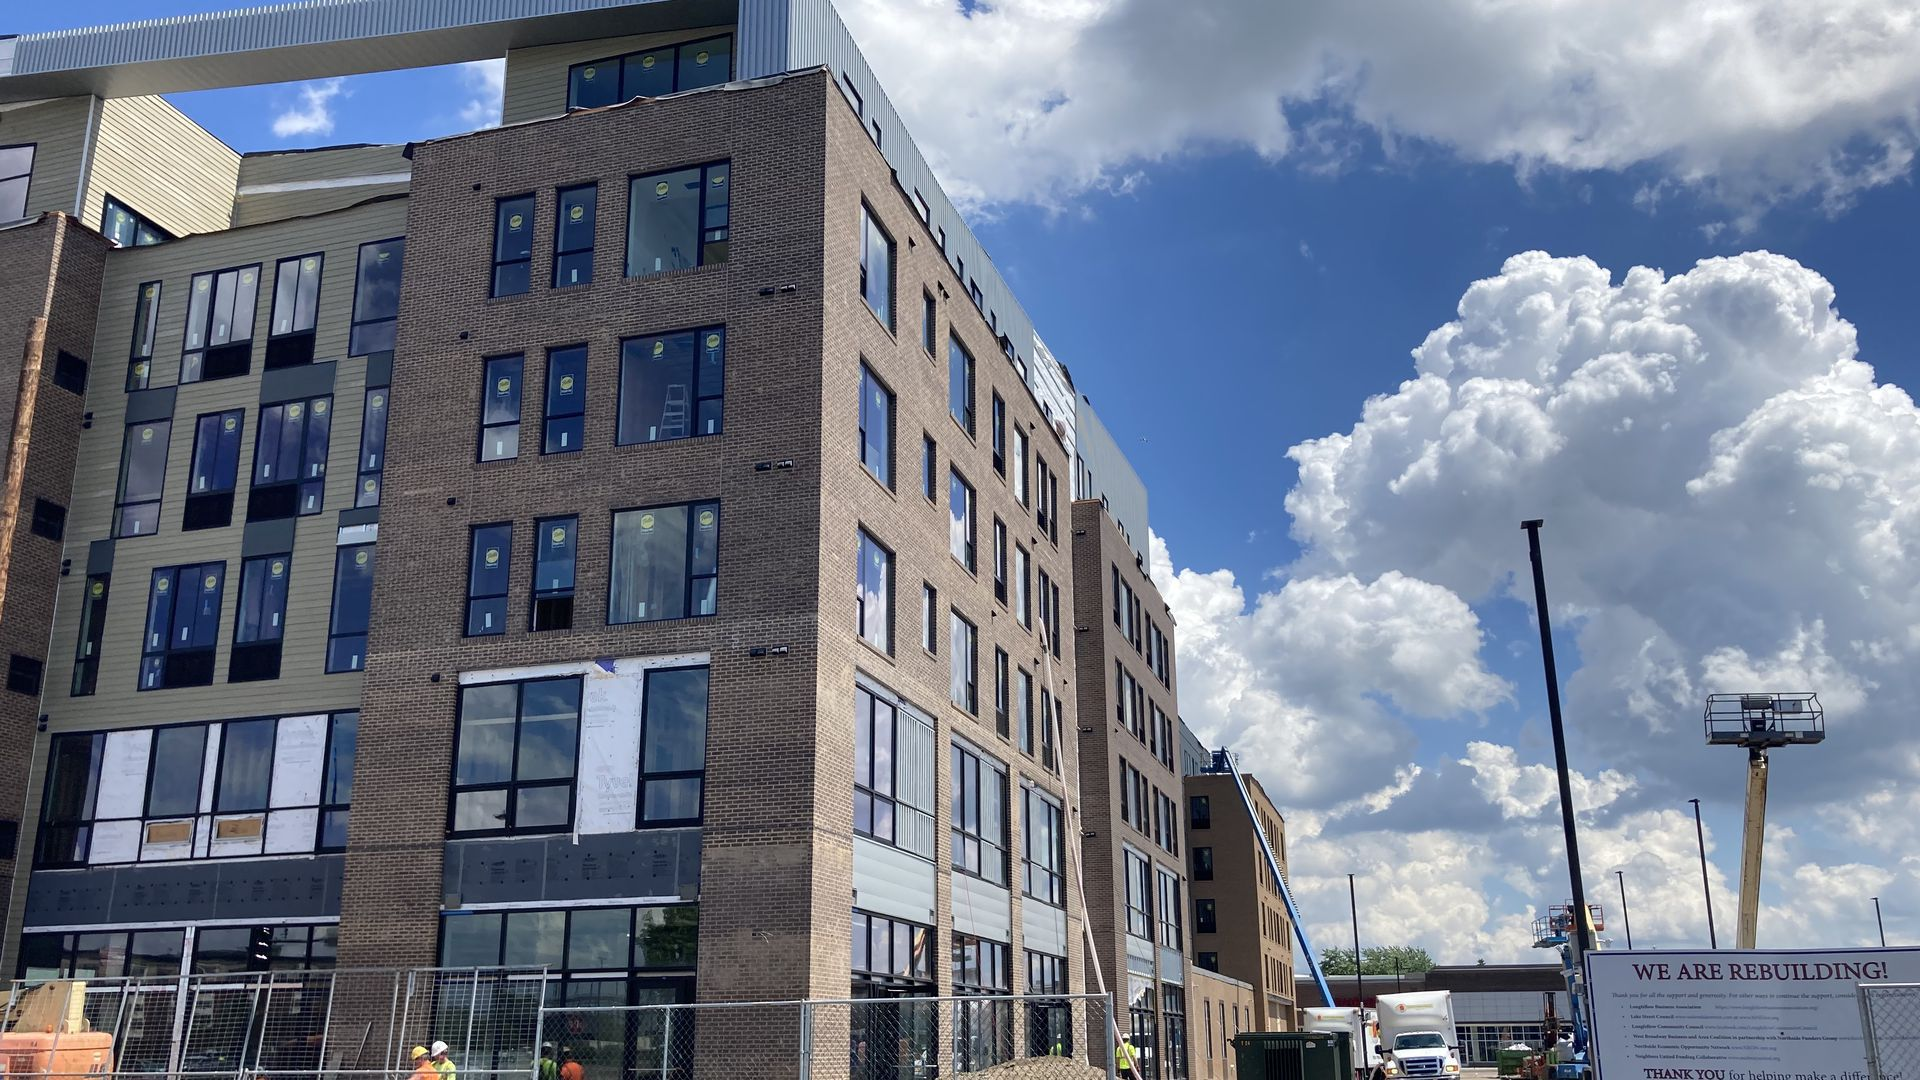 The exterior of a new Midtown Center apartment building in Minneapolis.